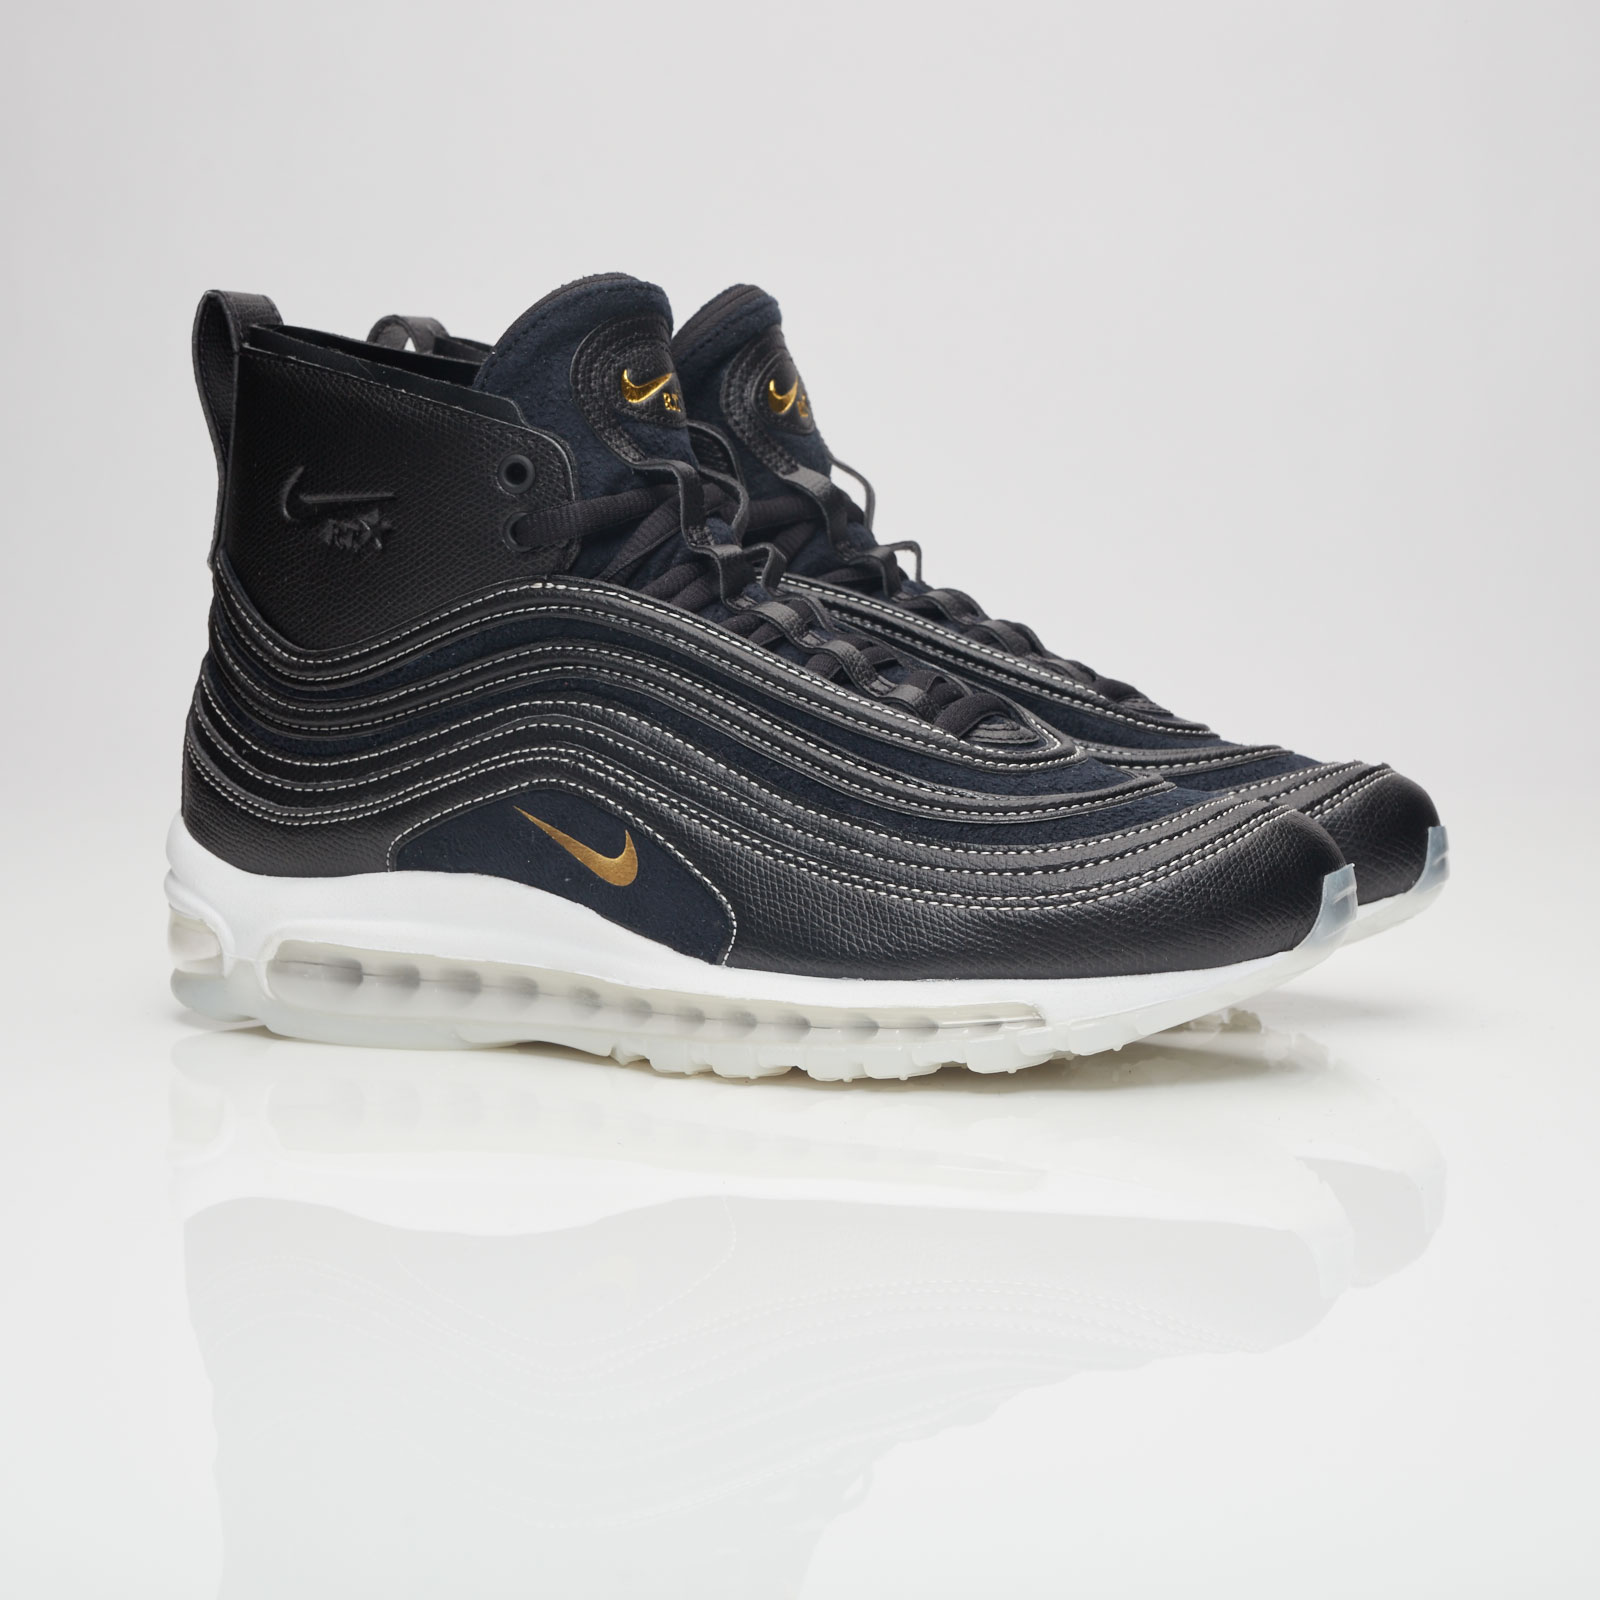 Nike Air Max 97 Mid   Rt - 913314-001 - Sneakersnstuff  9bde3211ce